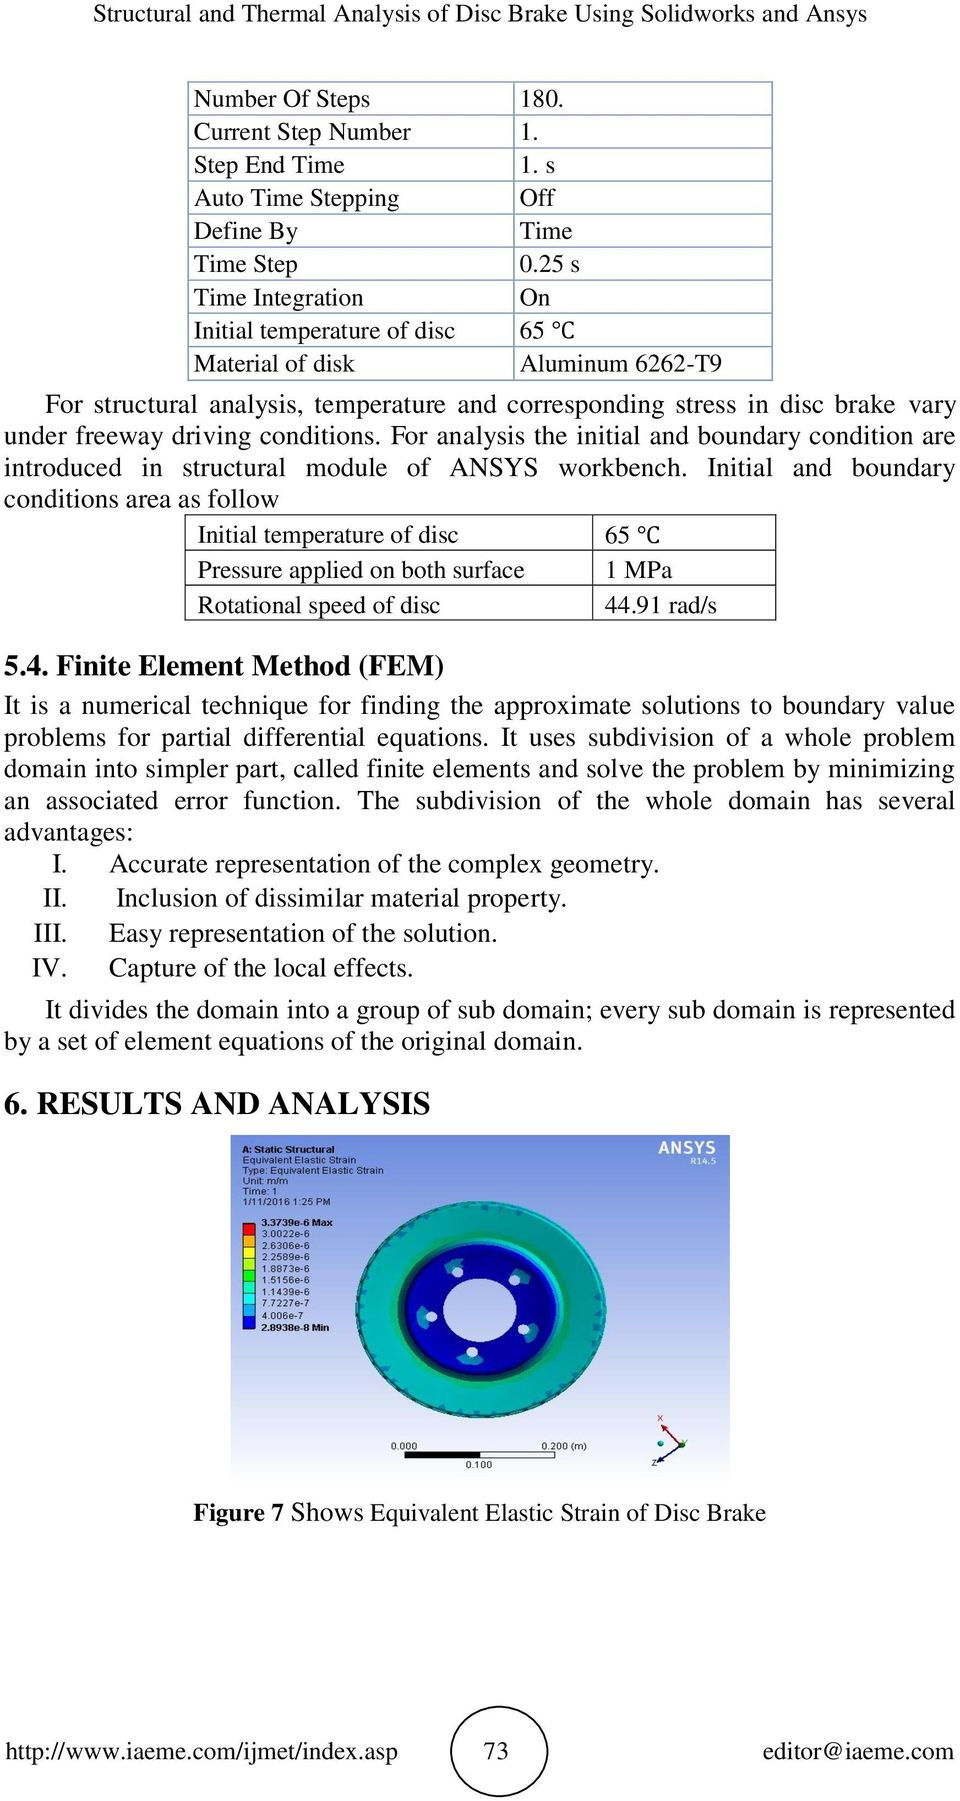 STRUCTURAL AND THERMAL ANALYSIS OF DISC BRAKE USING